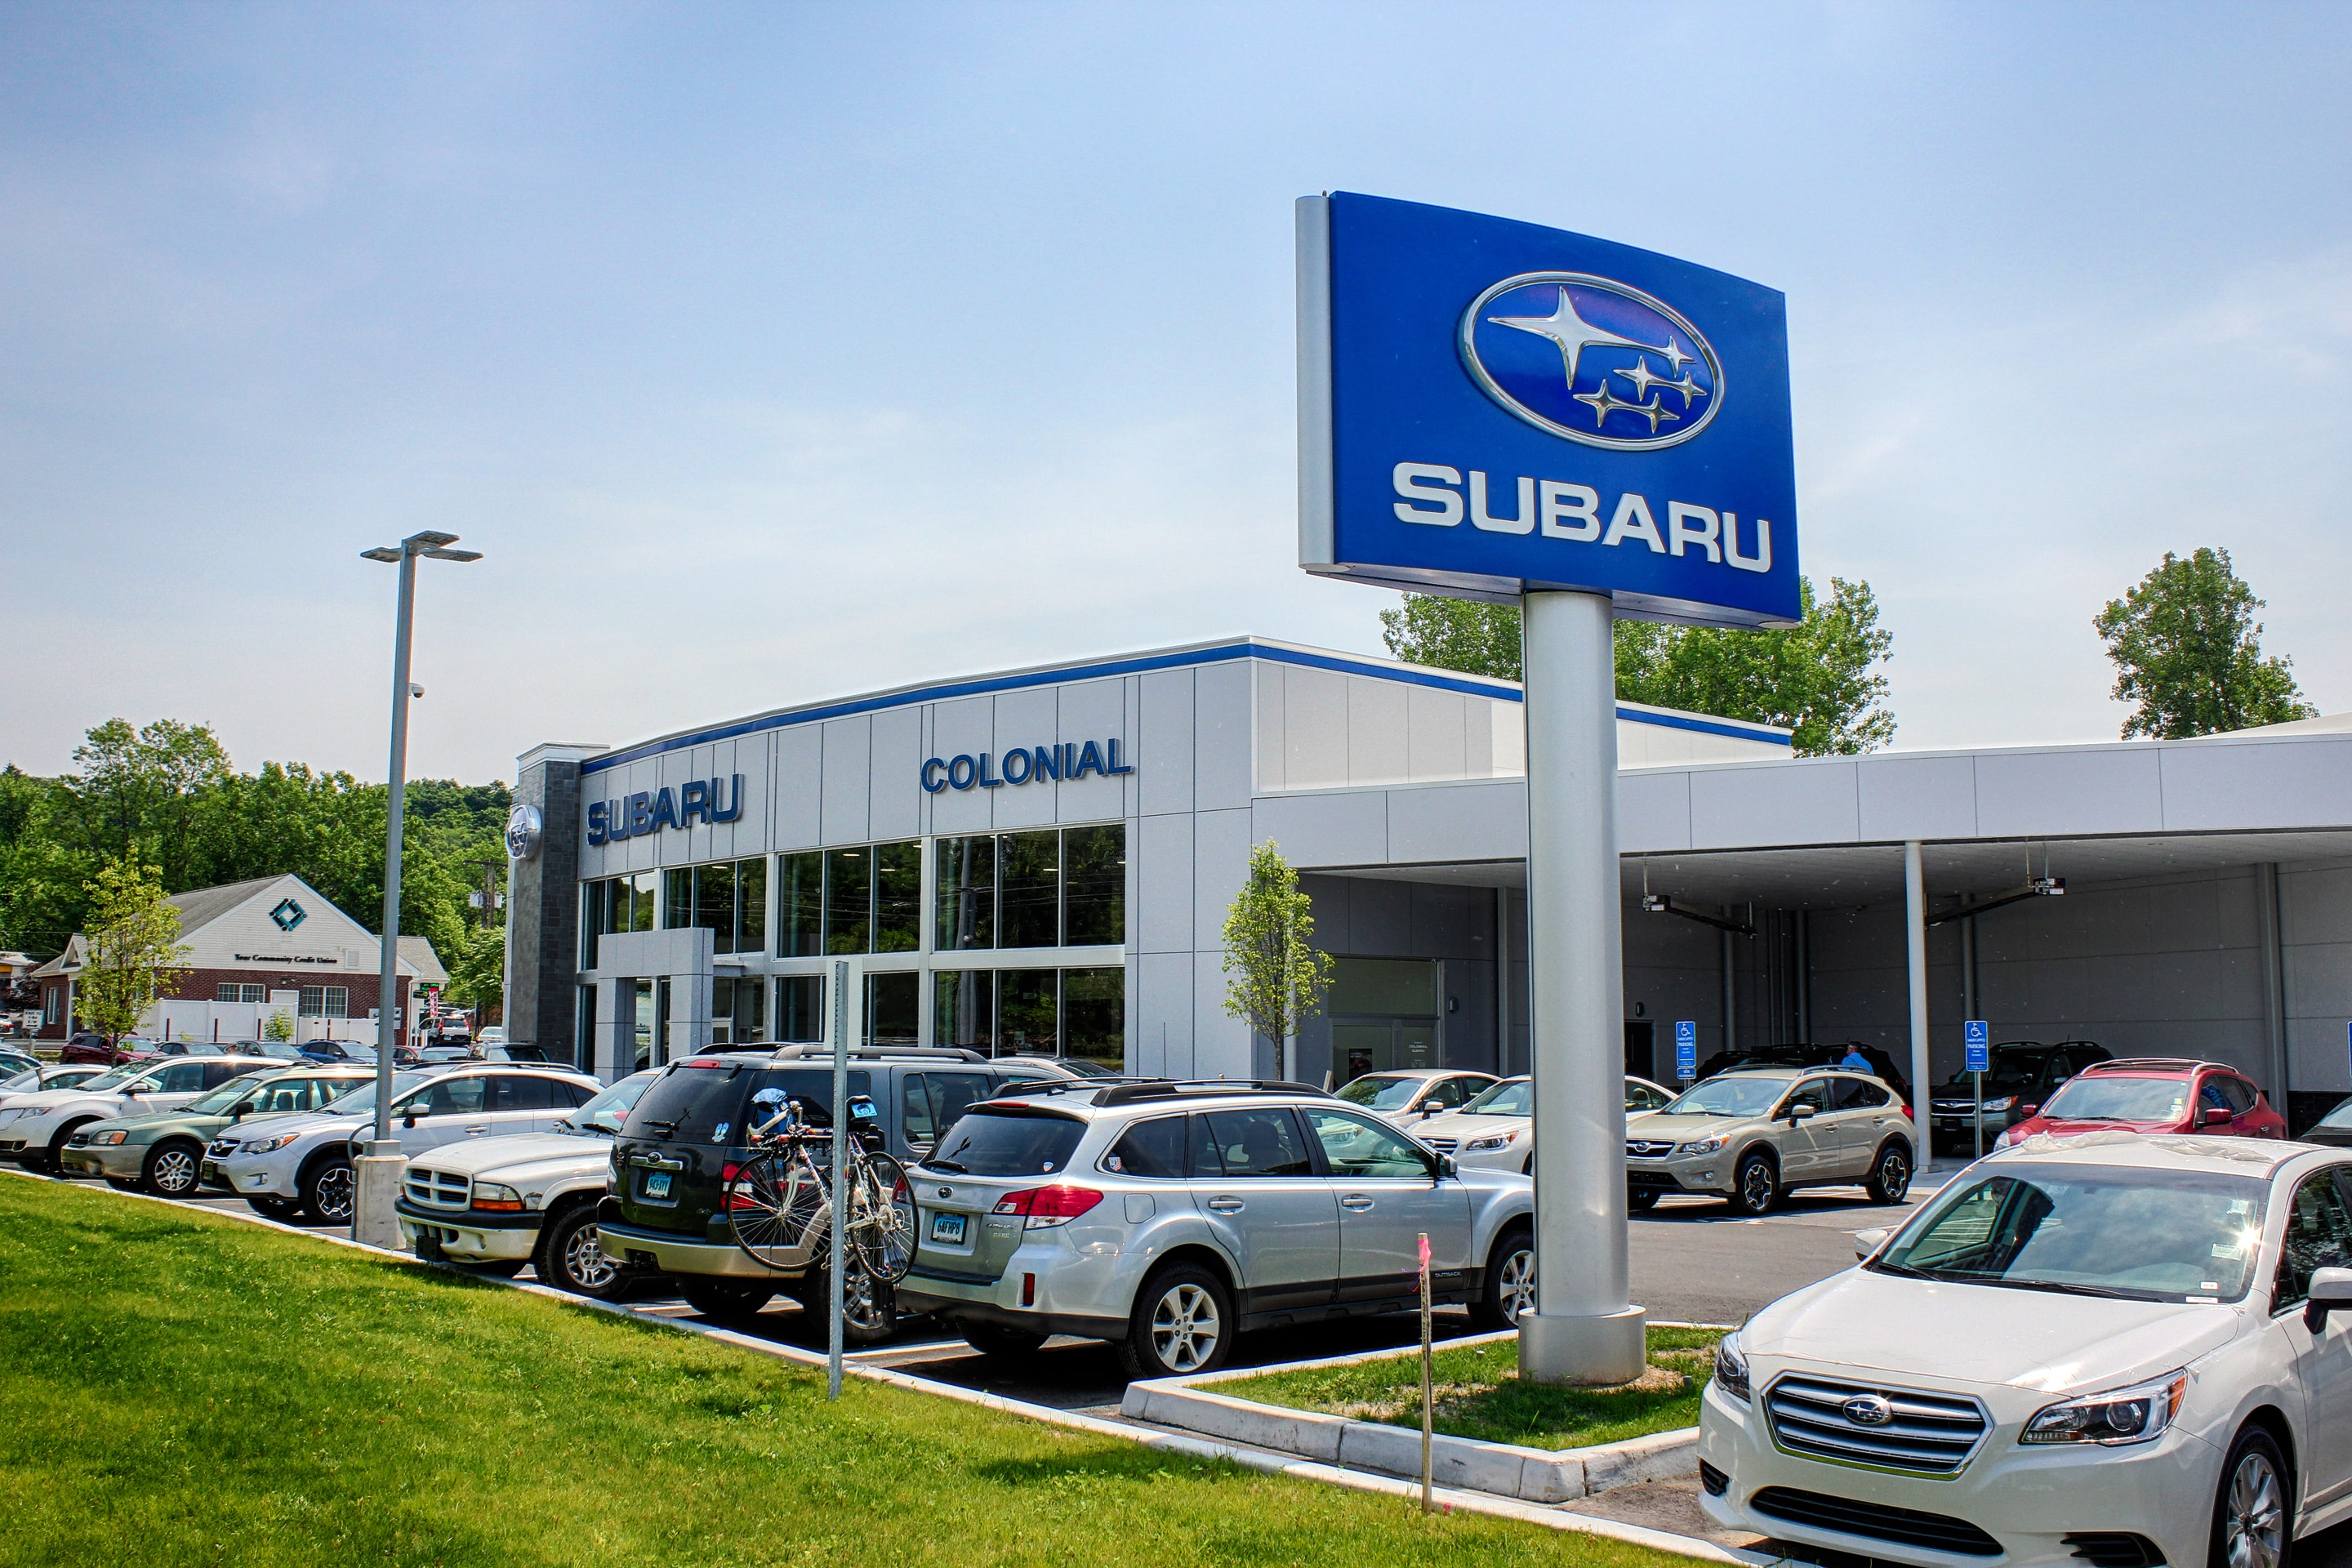 connecticut subaru dealership serving danbury waterbury ct norwalk ct and brewster ny. Black Bedroom Furniture Sets. Home Design Ideas